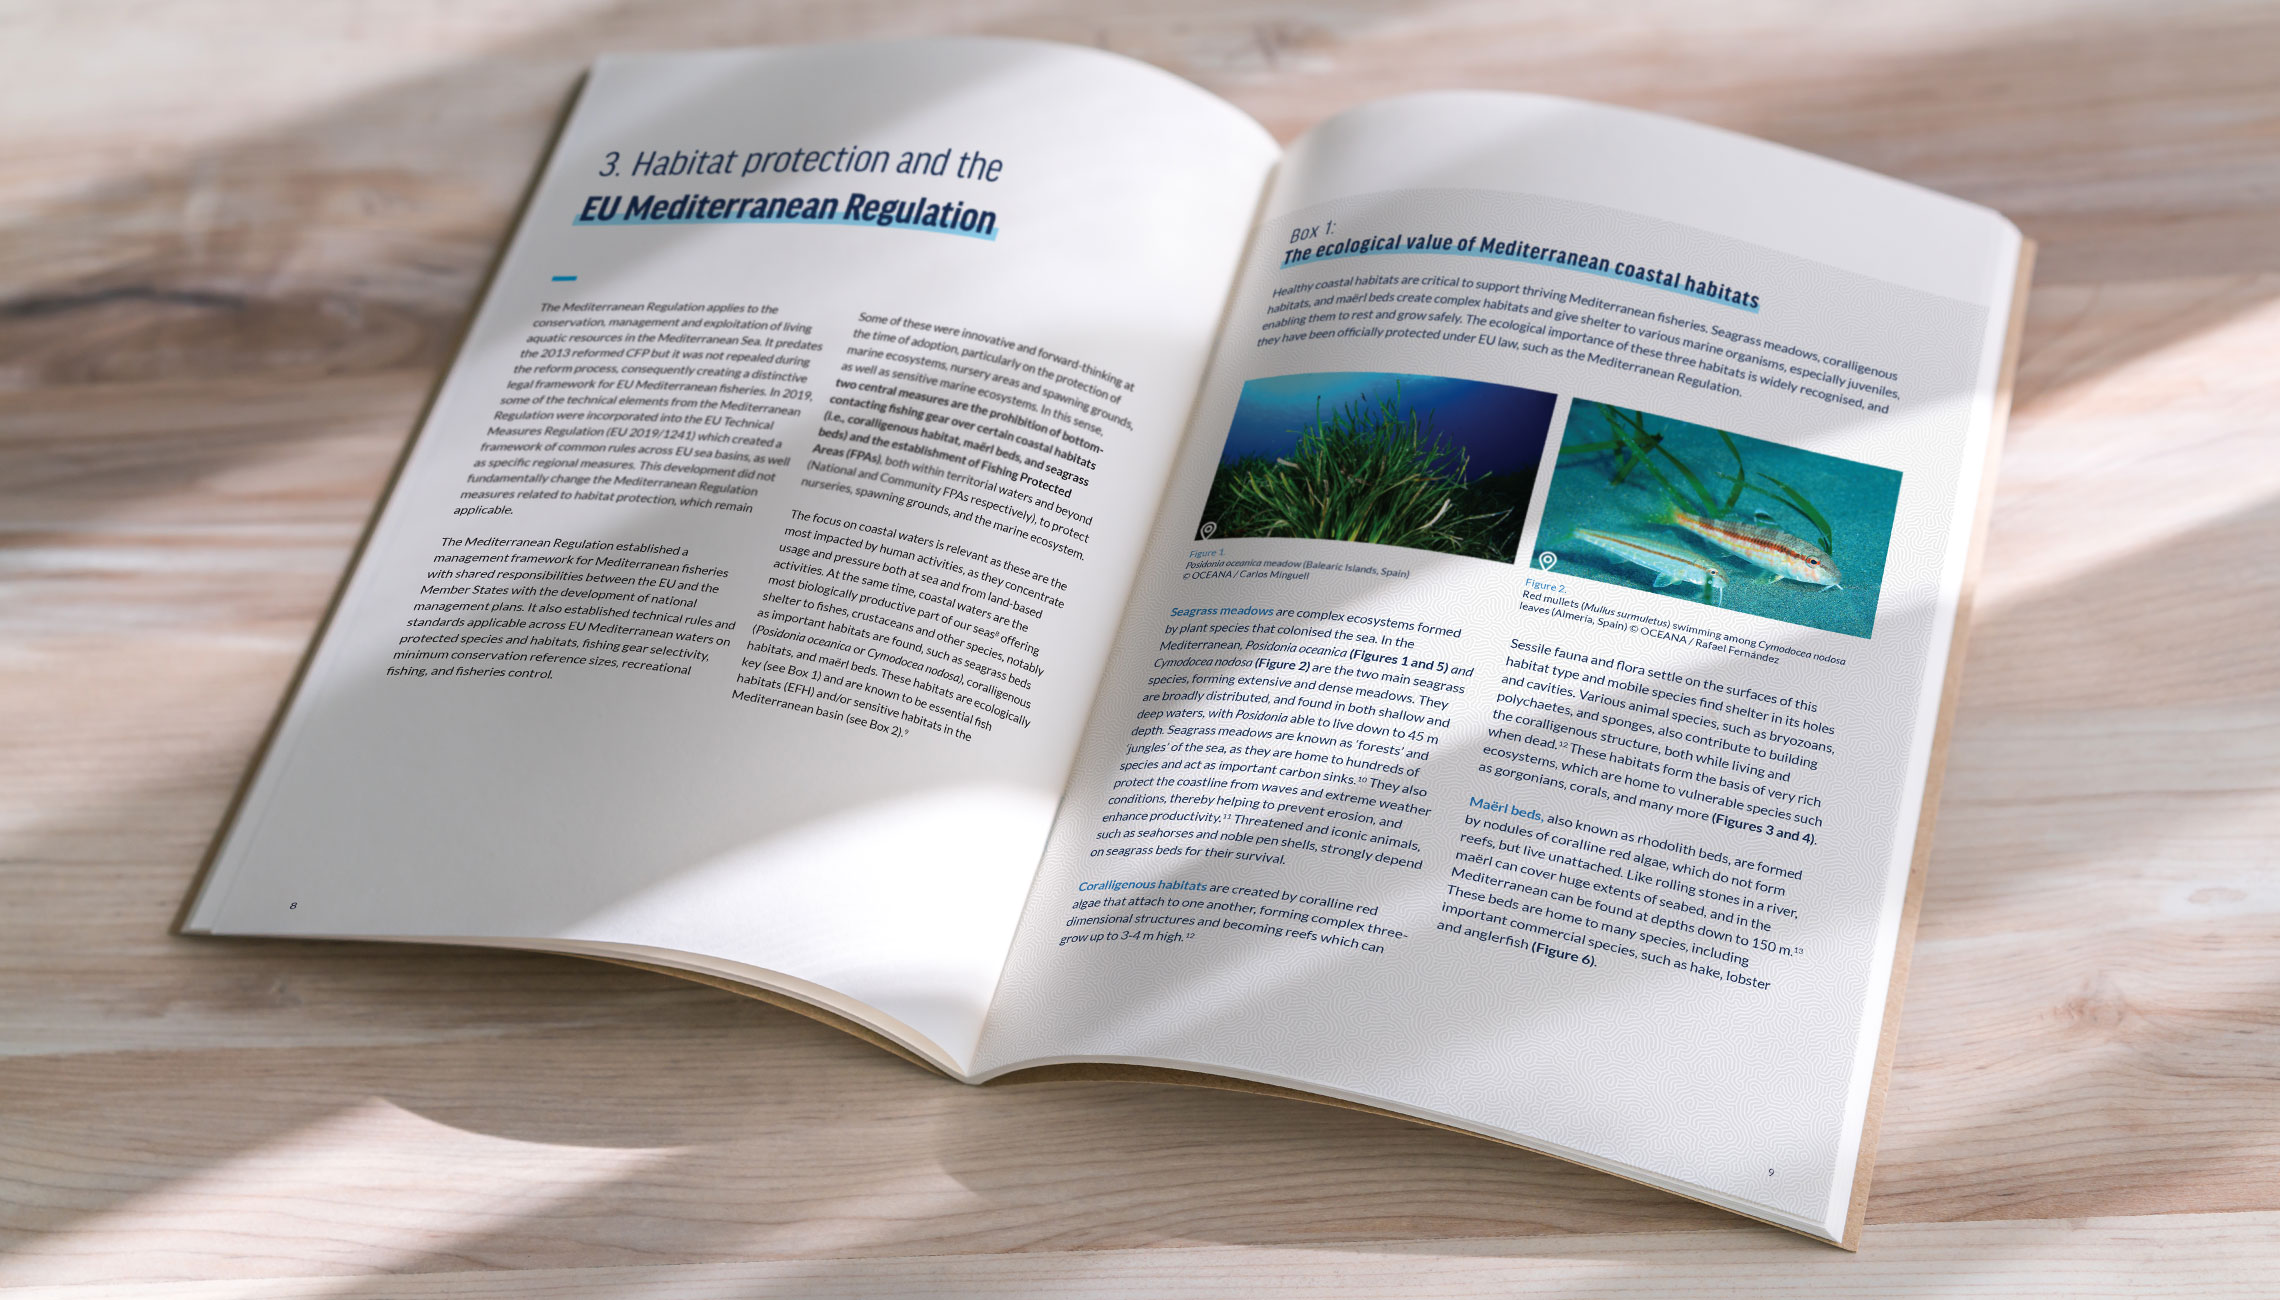 publication: Publications on marine reserves and the Mediterranean Sea Regulation - image 3